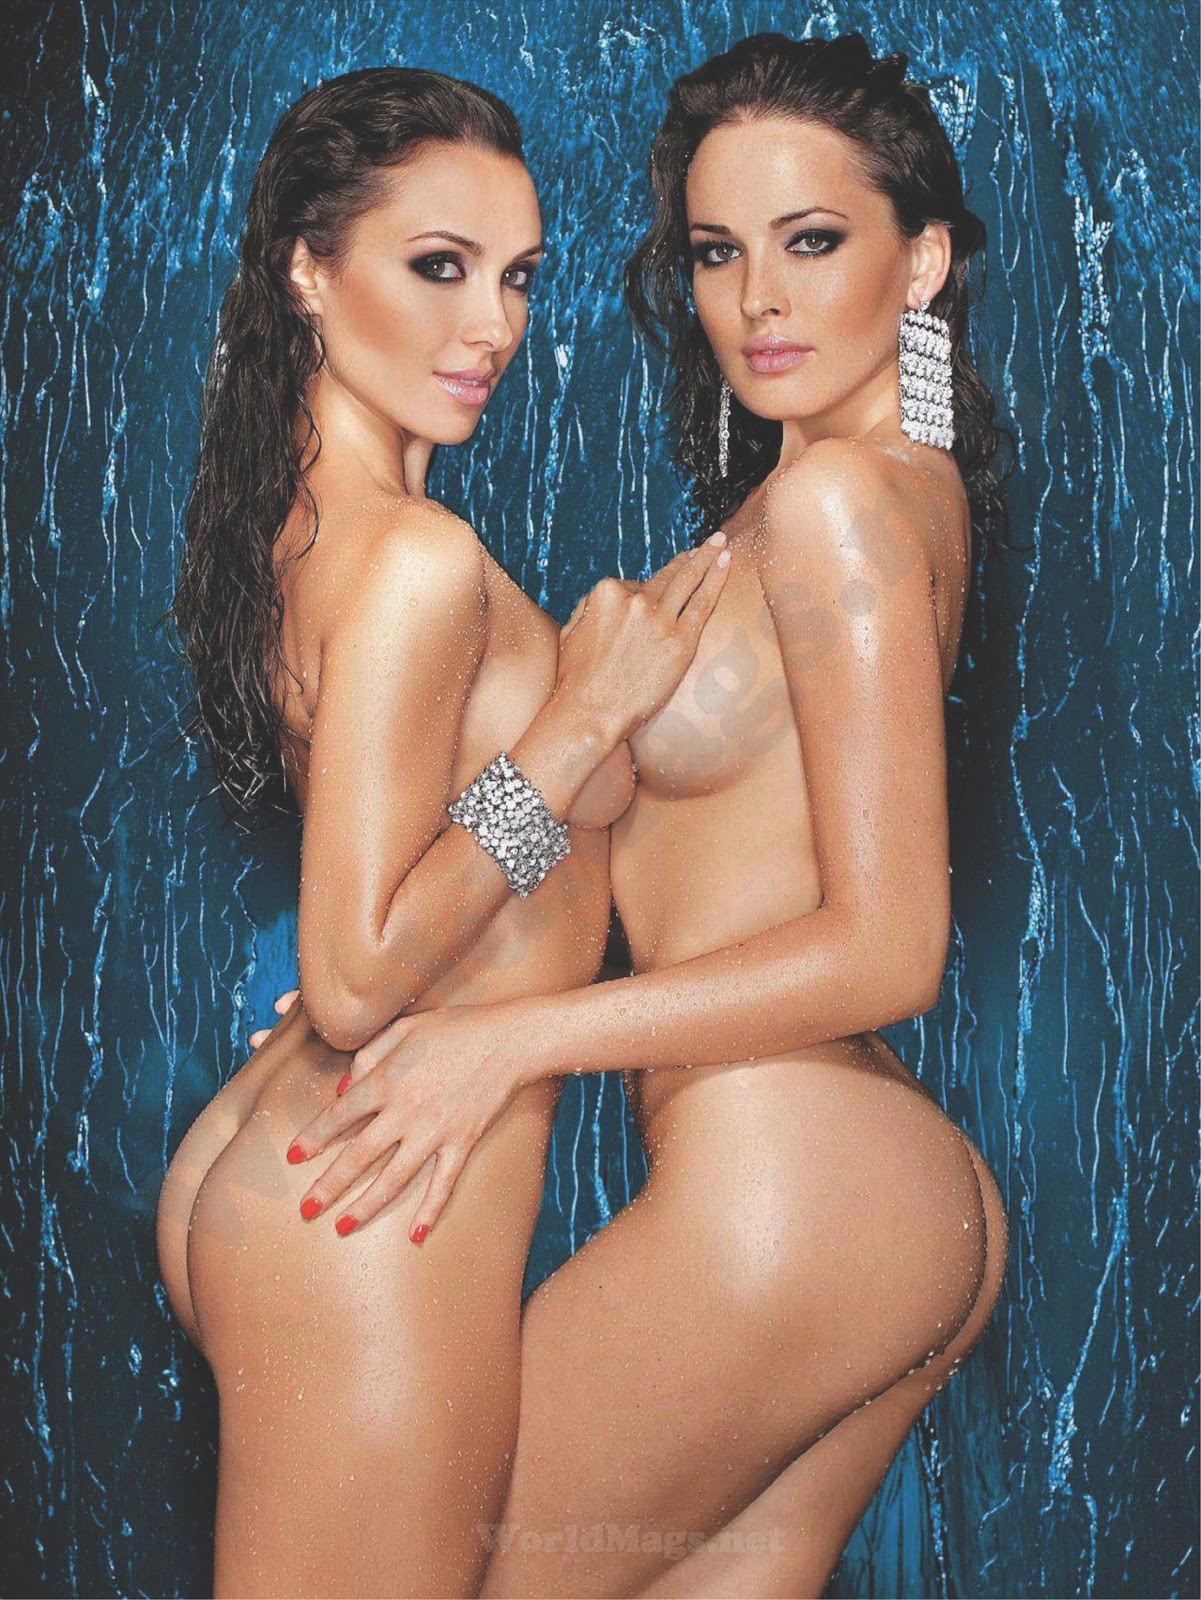 Dasha Astafieva Nude Pics Top dasha astafieva & anastasia kumeyko on the cover of playboy